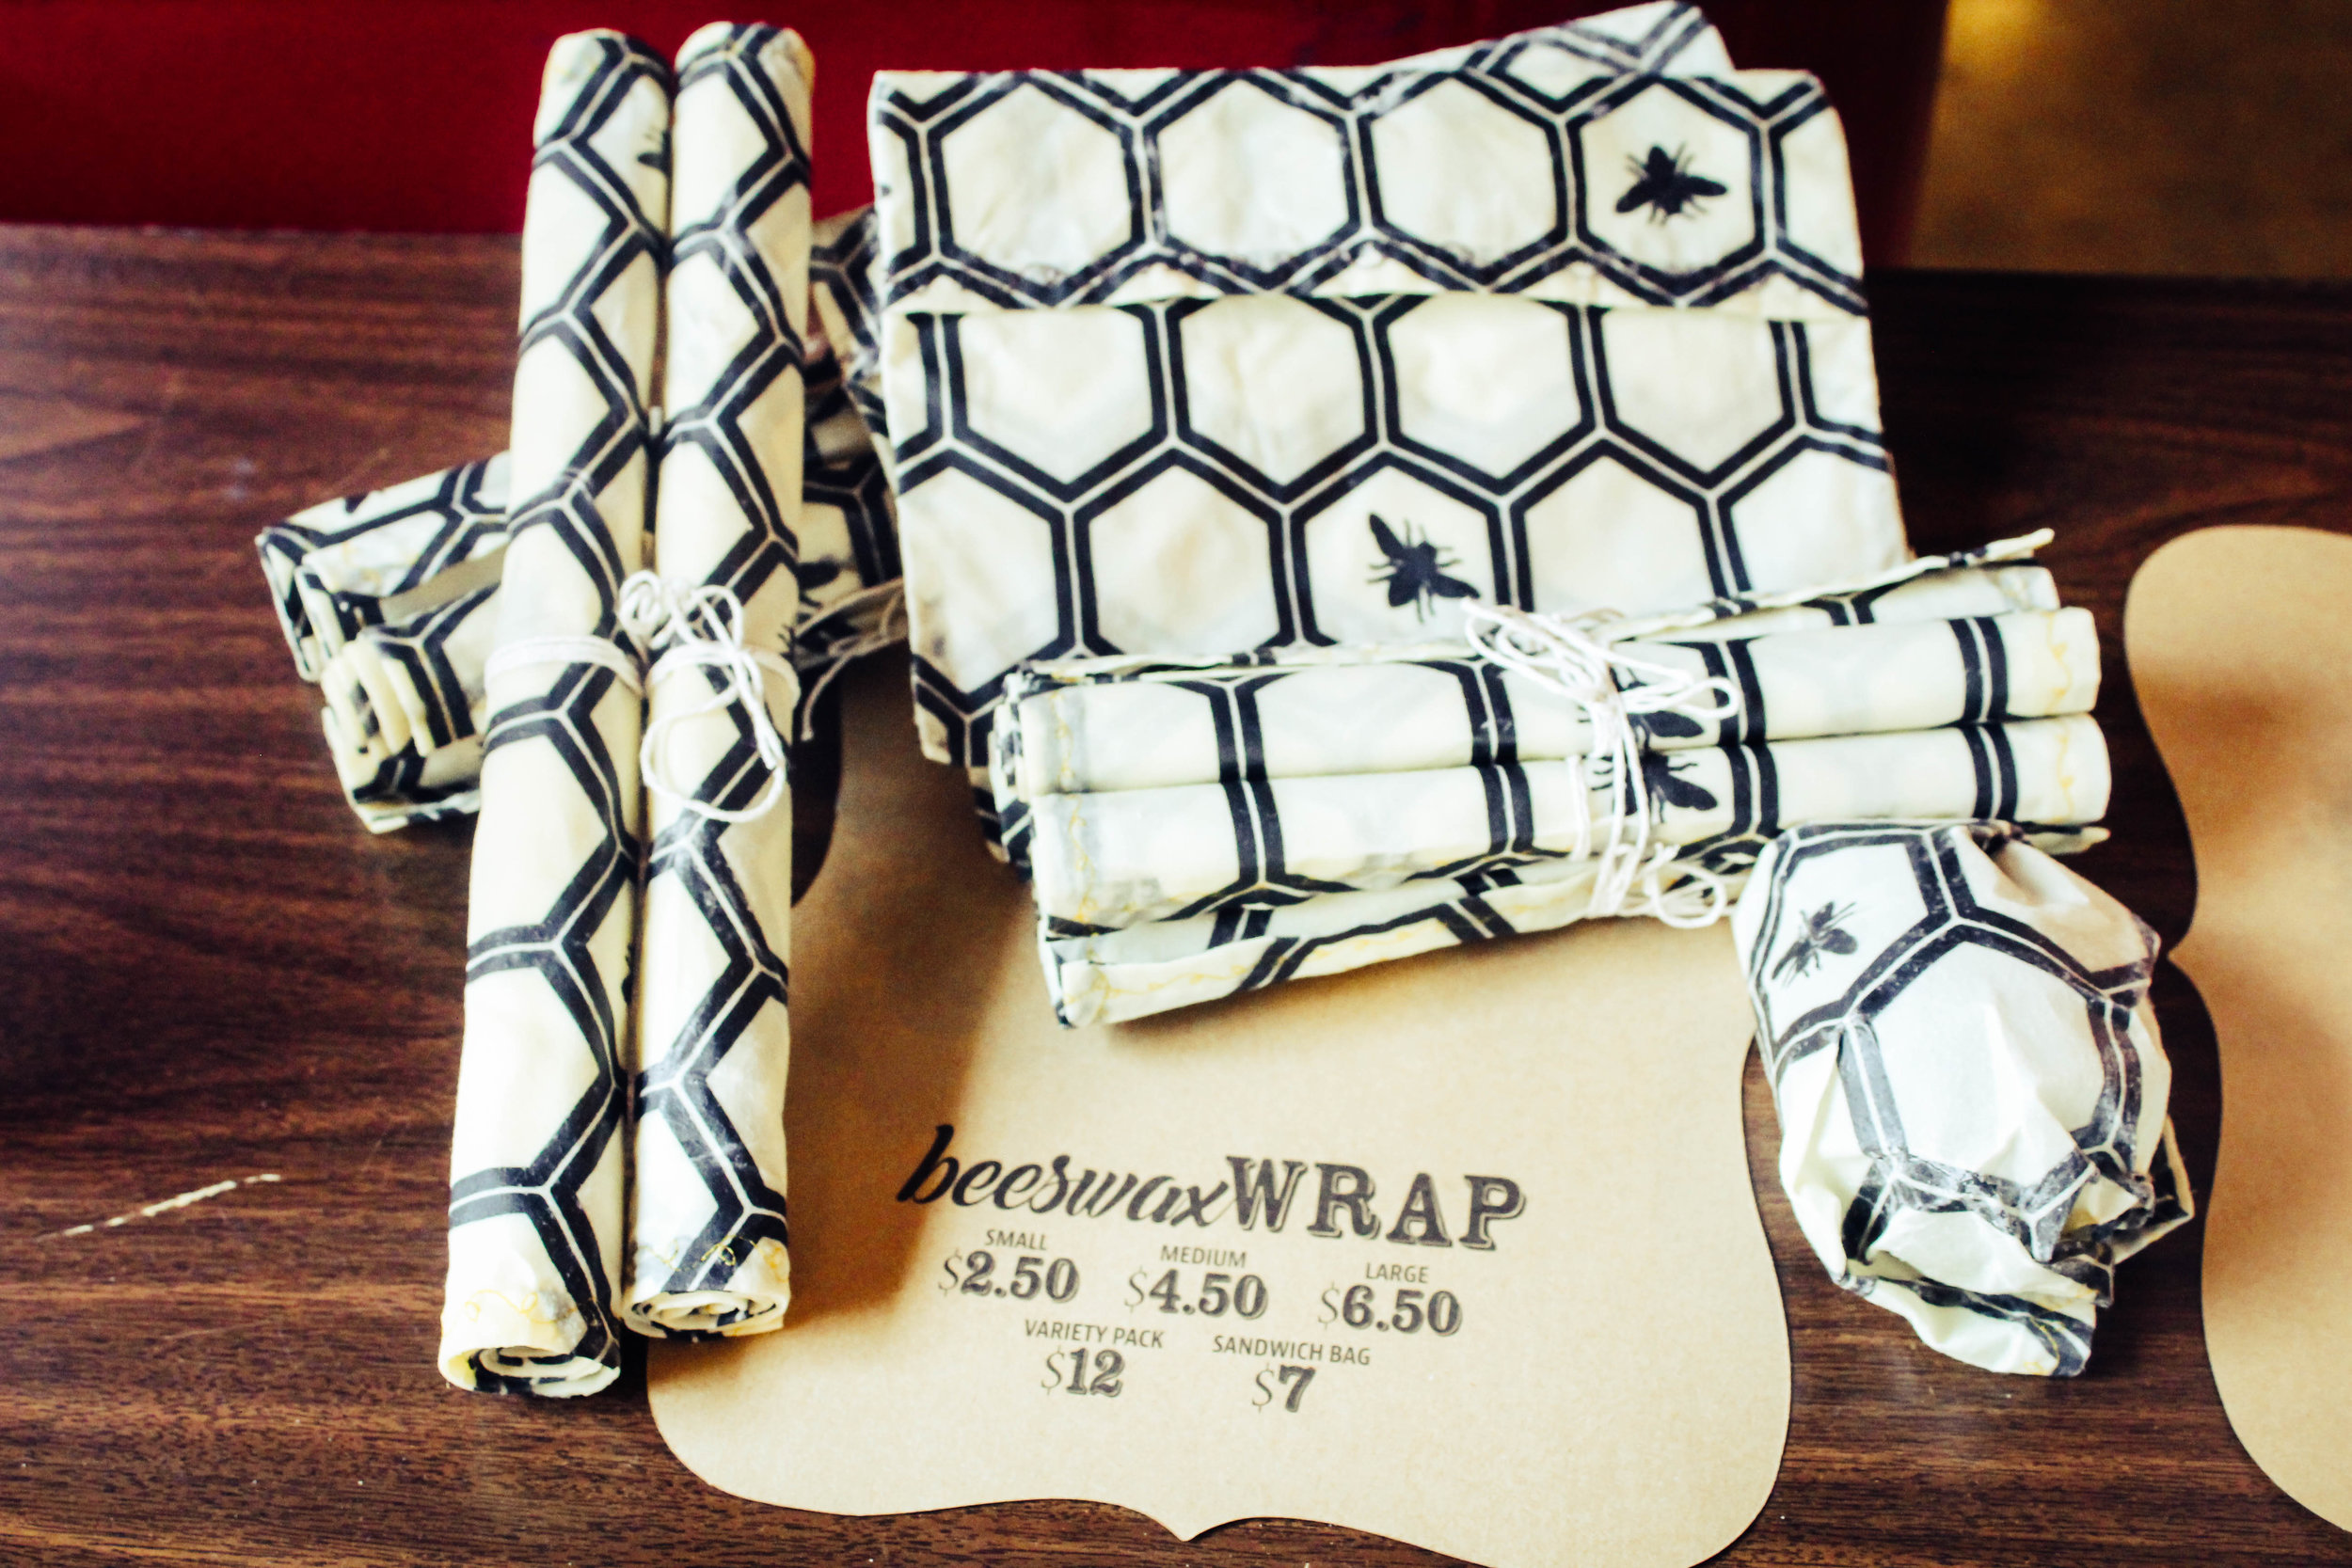 That Hipster Life selling sustainable products like Beeswax Wraps, Straws, and Lotion at the Shasta Lake Farmers Market at Heritage Roasting Co in Shasta Lake hosted by the Shasta Lake Creative Community